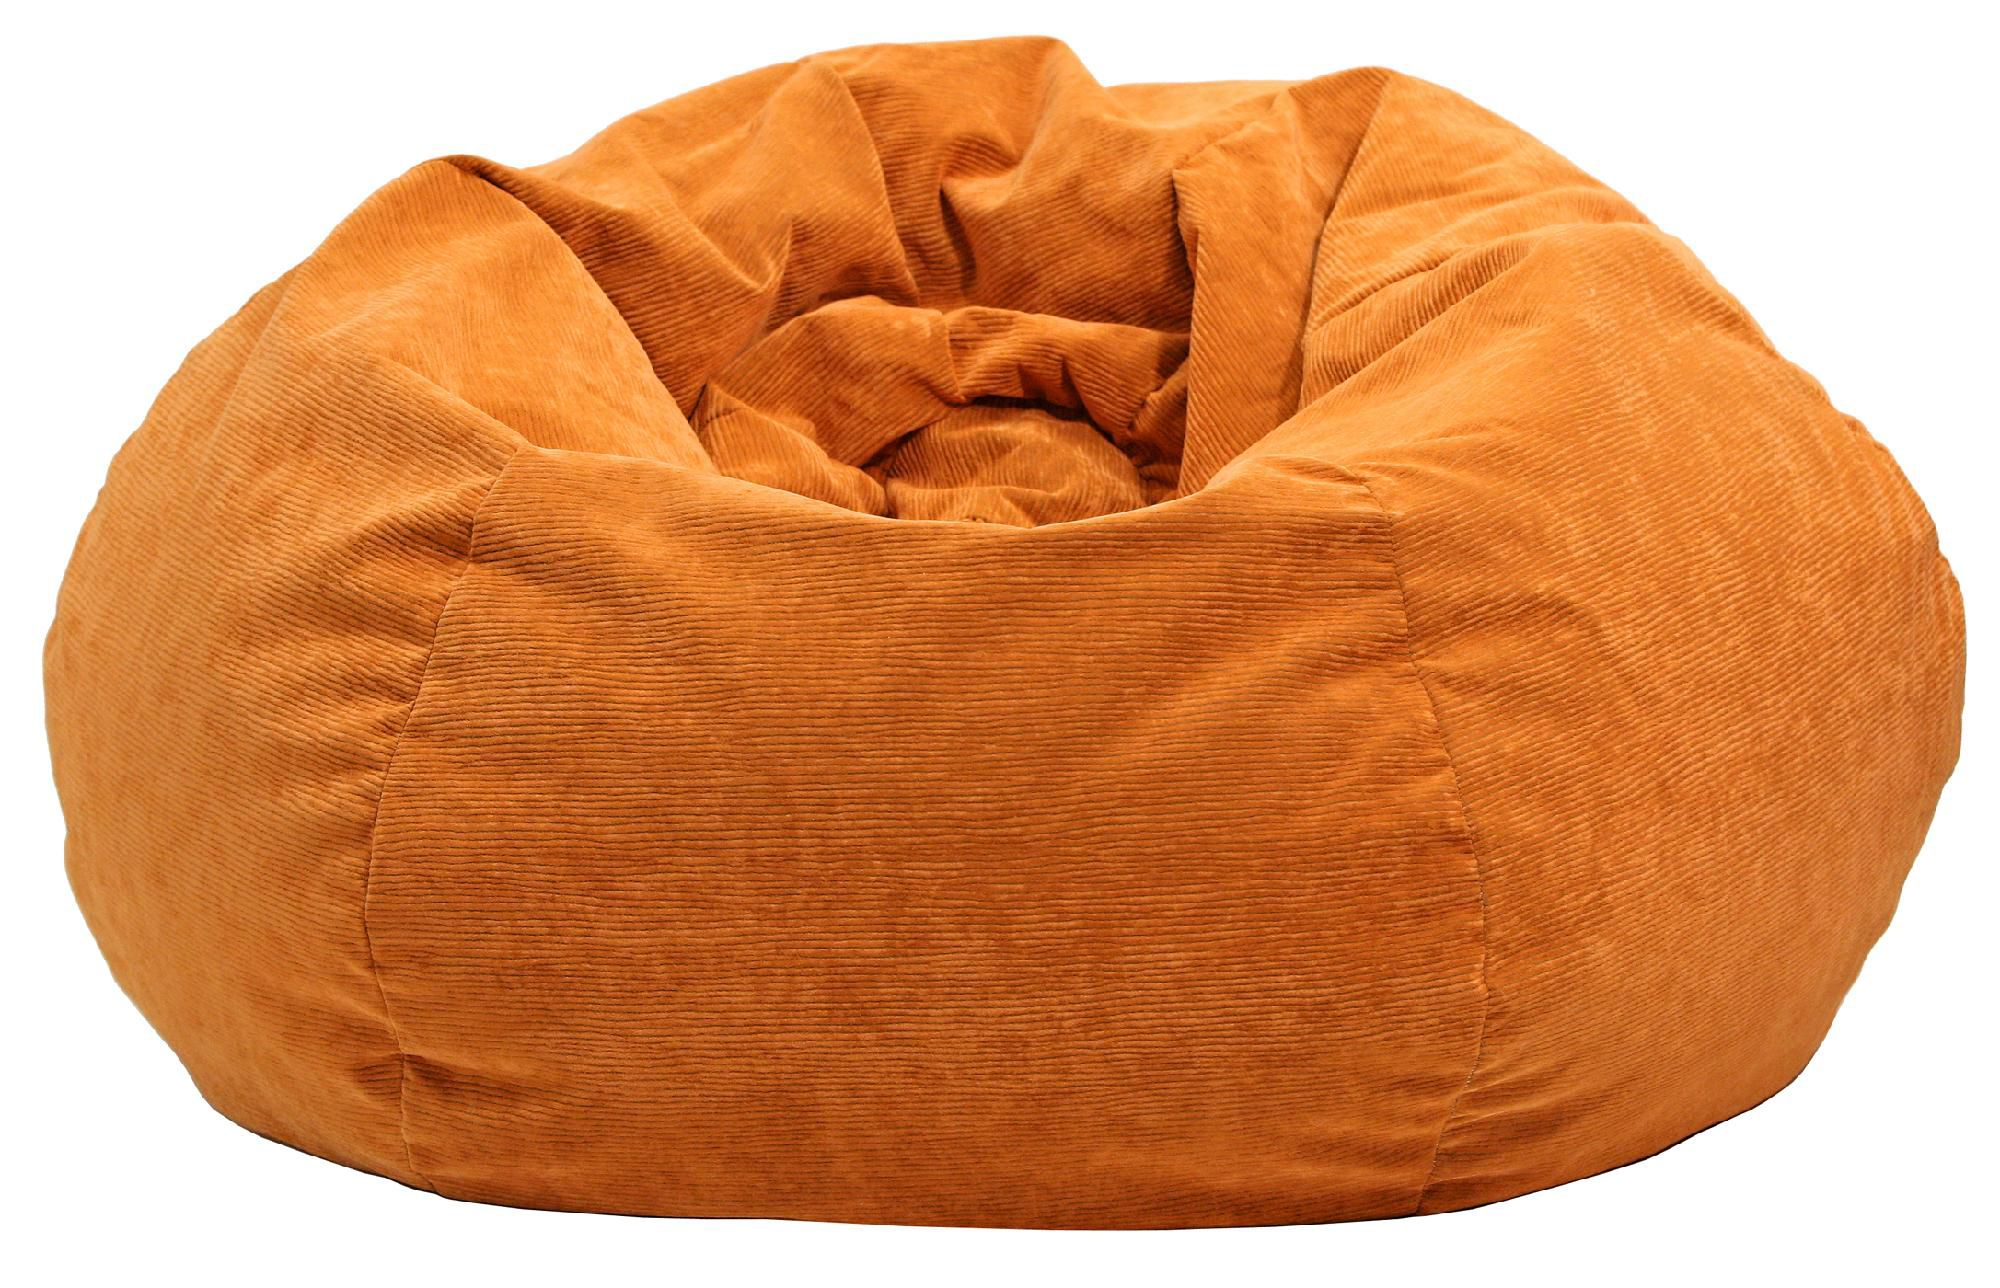 Corduroy Bean Bag Chair Extra Large Micro Fiber Suede Corduroy Bean Bag Bean Bags